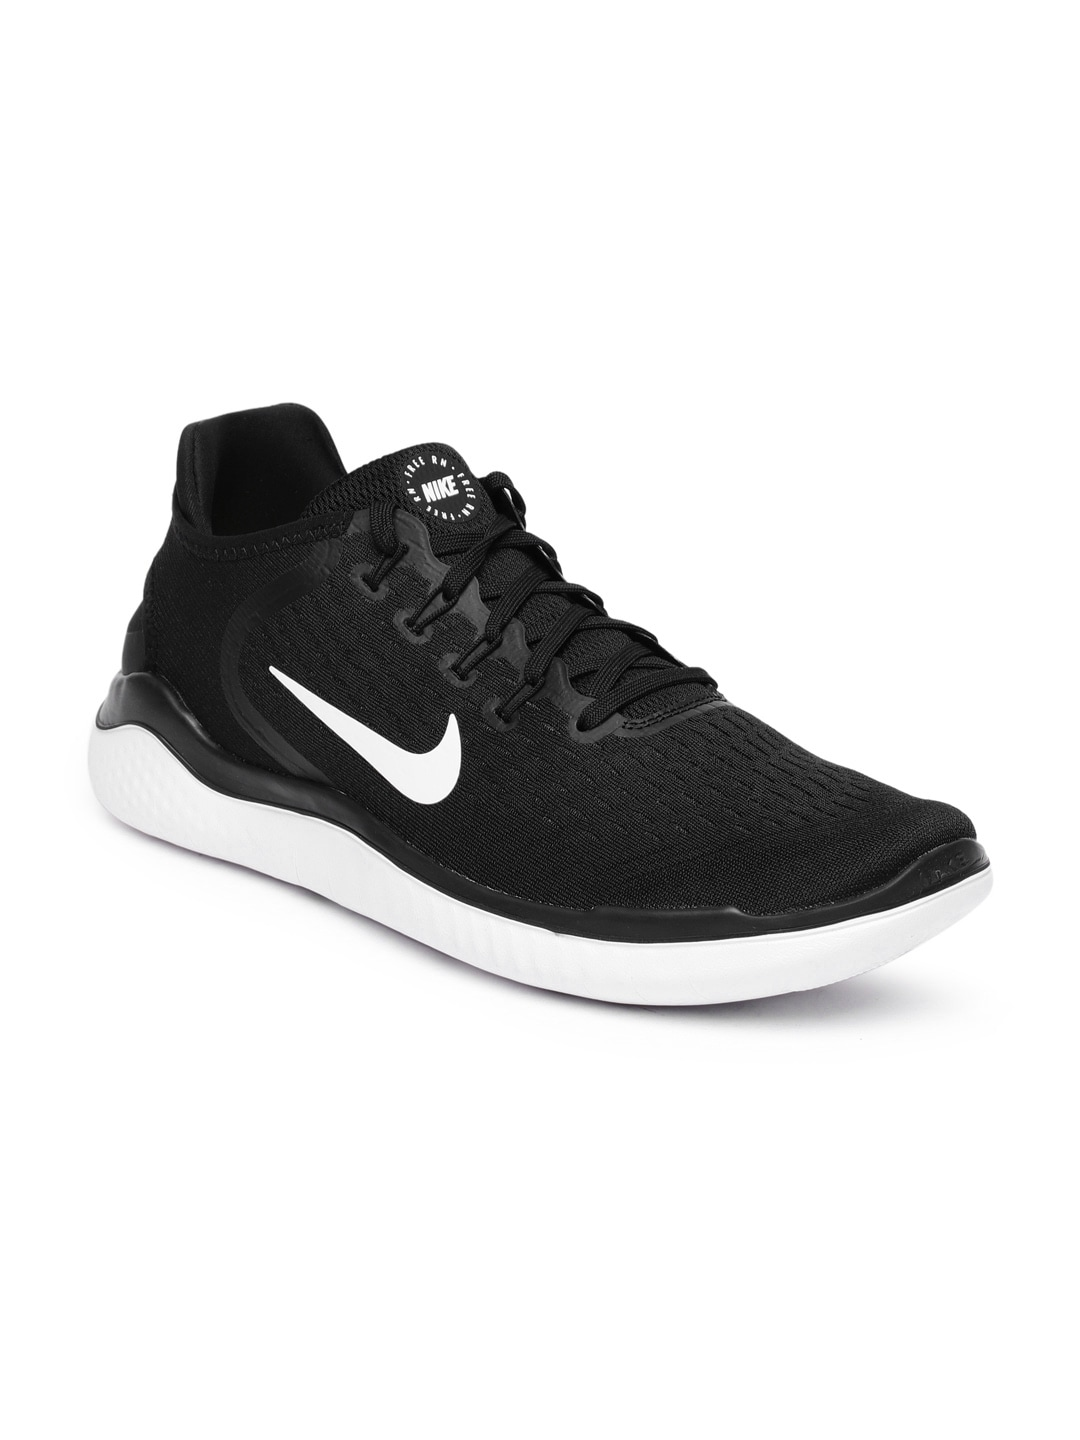 0fa42a2b5 Nike Running Shoes - Buy Nike Running Shoes Online